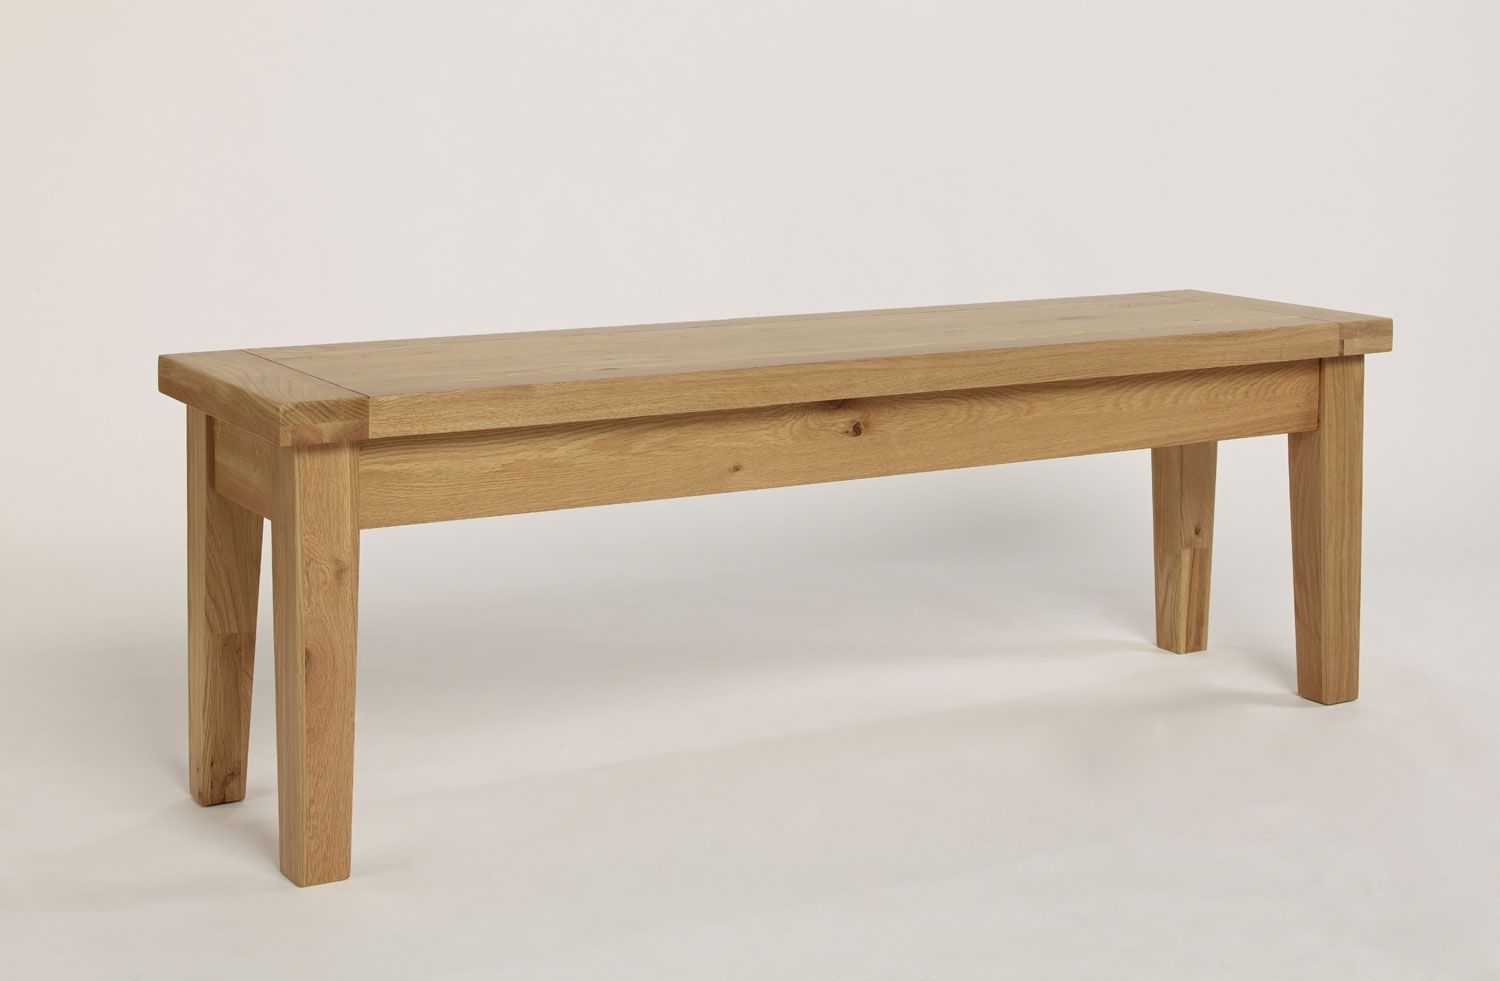 Cool Pin By Jeromese On New Oak Bench Small Table Chairs Alphanode Cool Chair Designs And Ideas Alphanodeonline